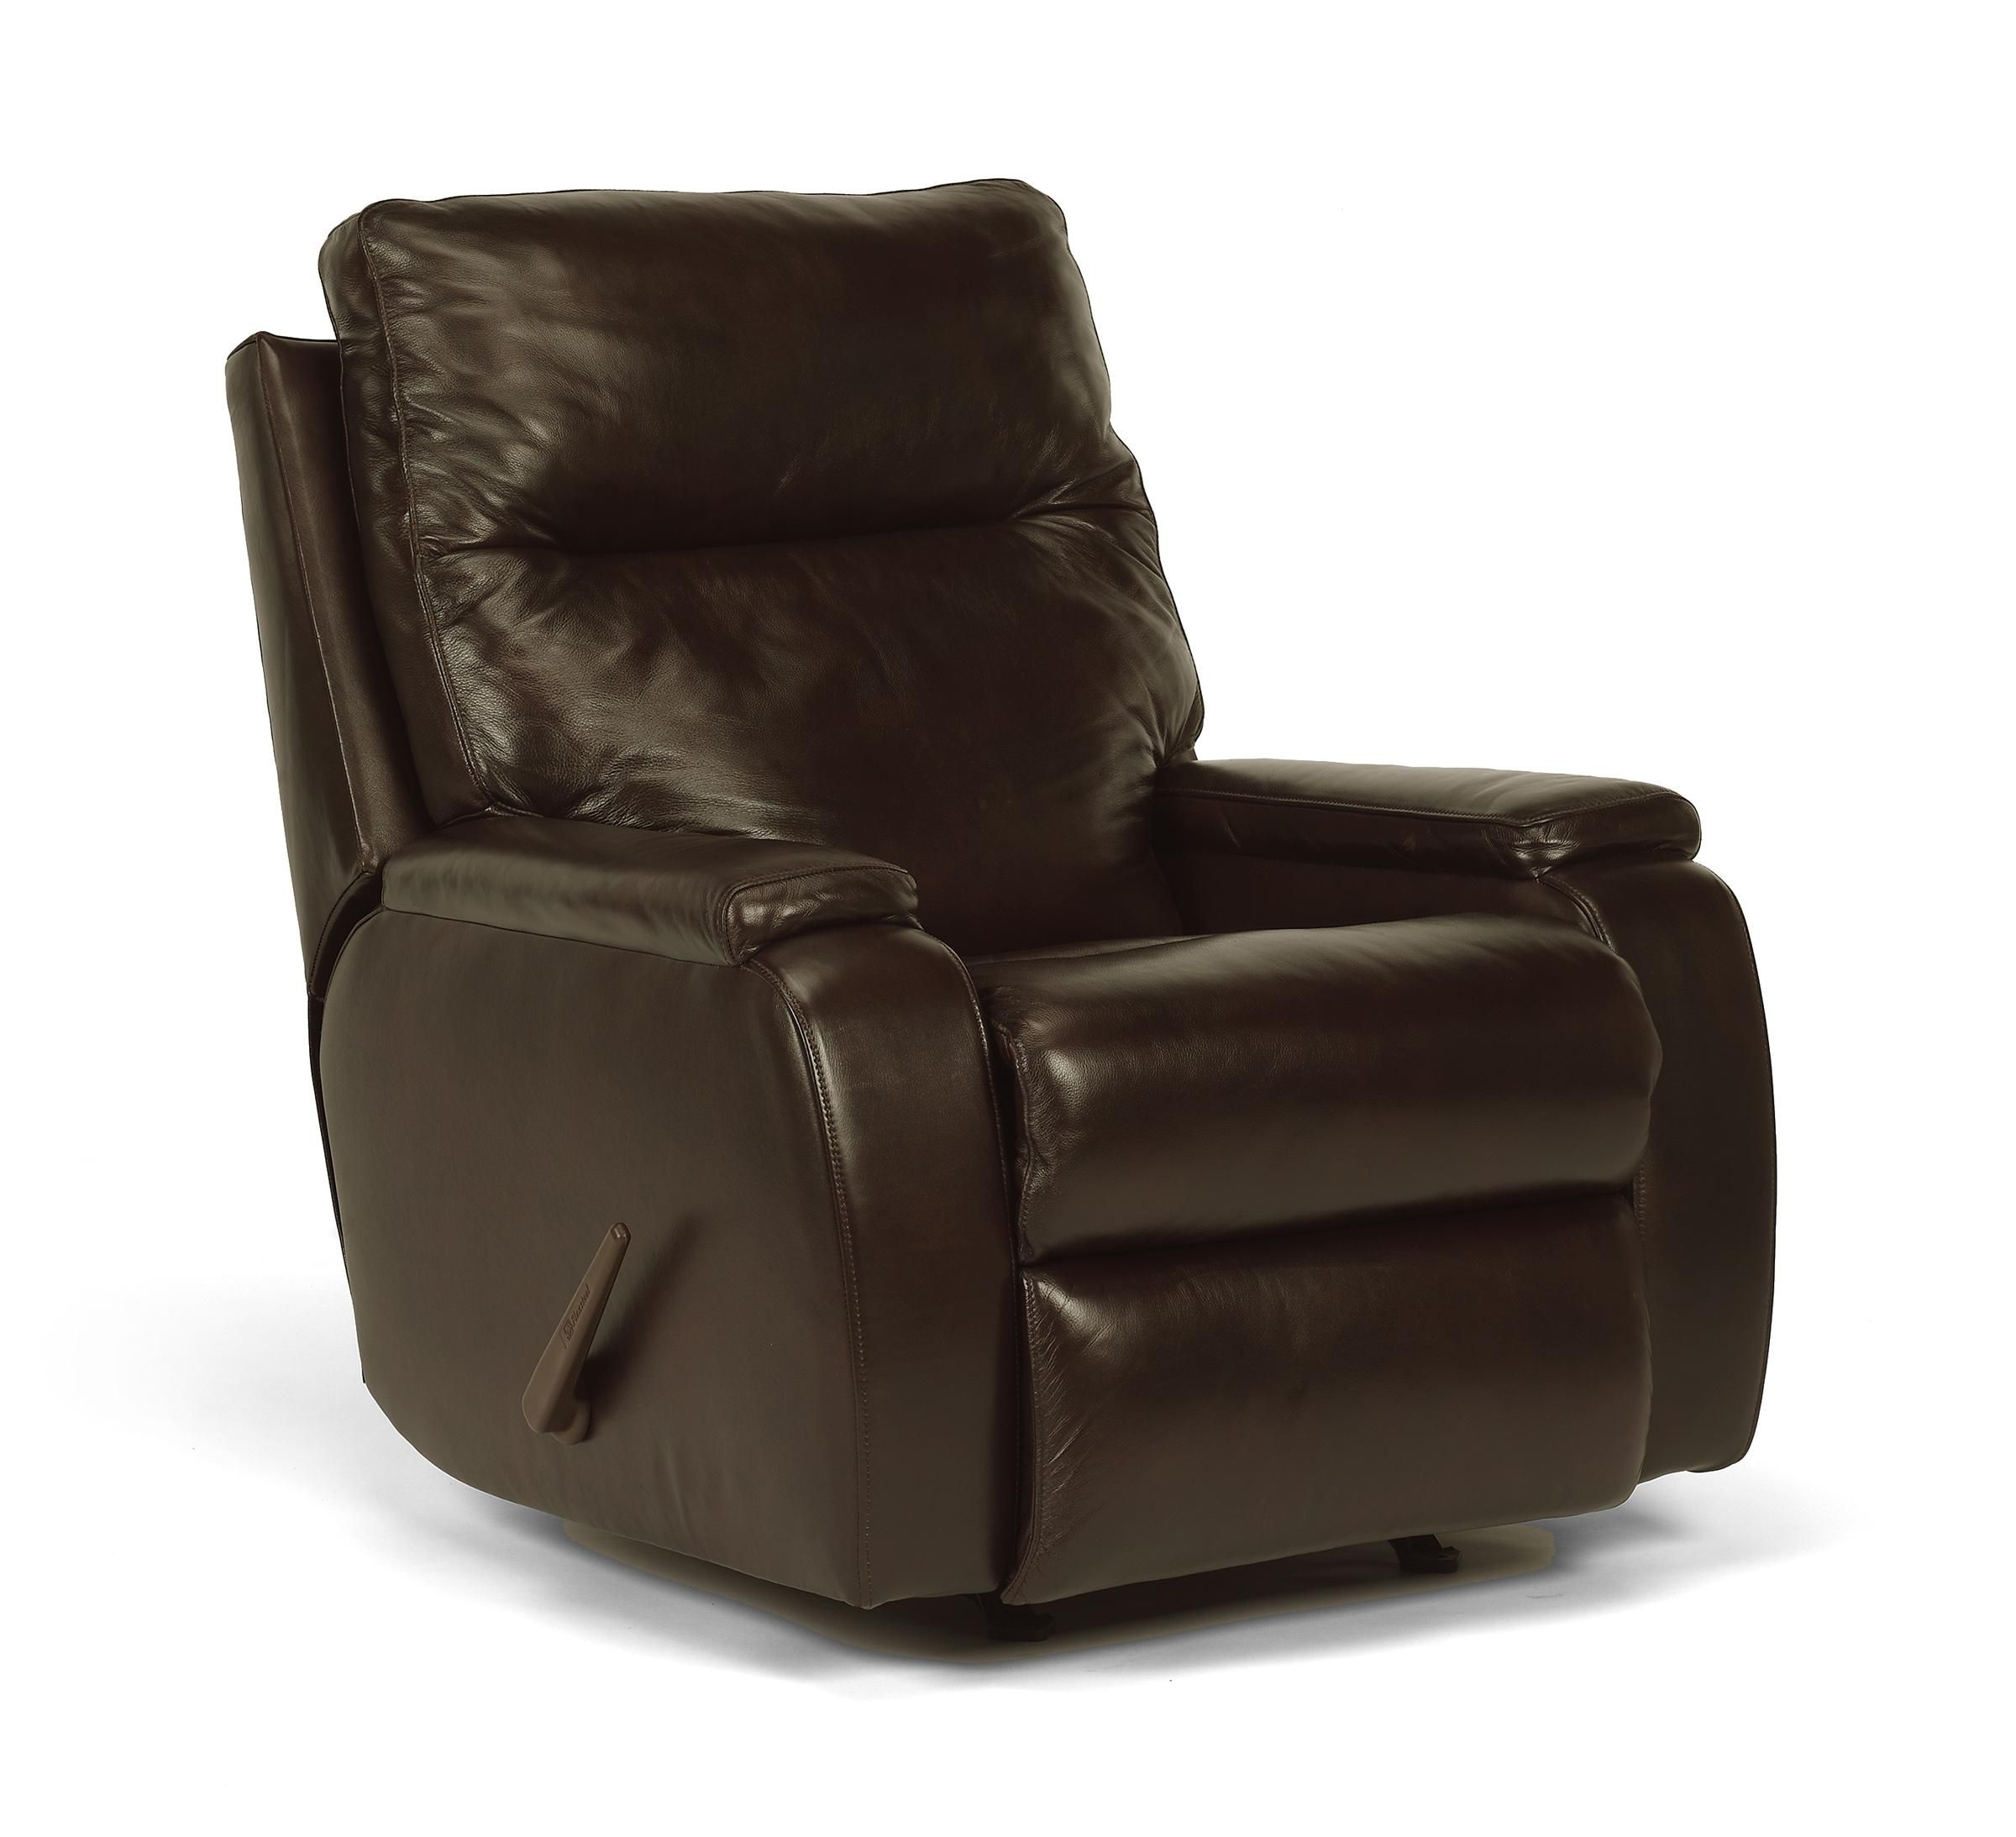 Latitudes - Runway Rocking Recliner by Flexsteel